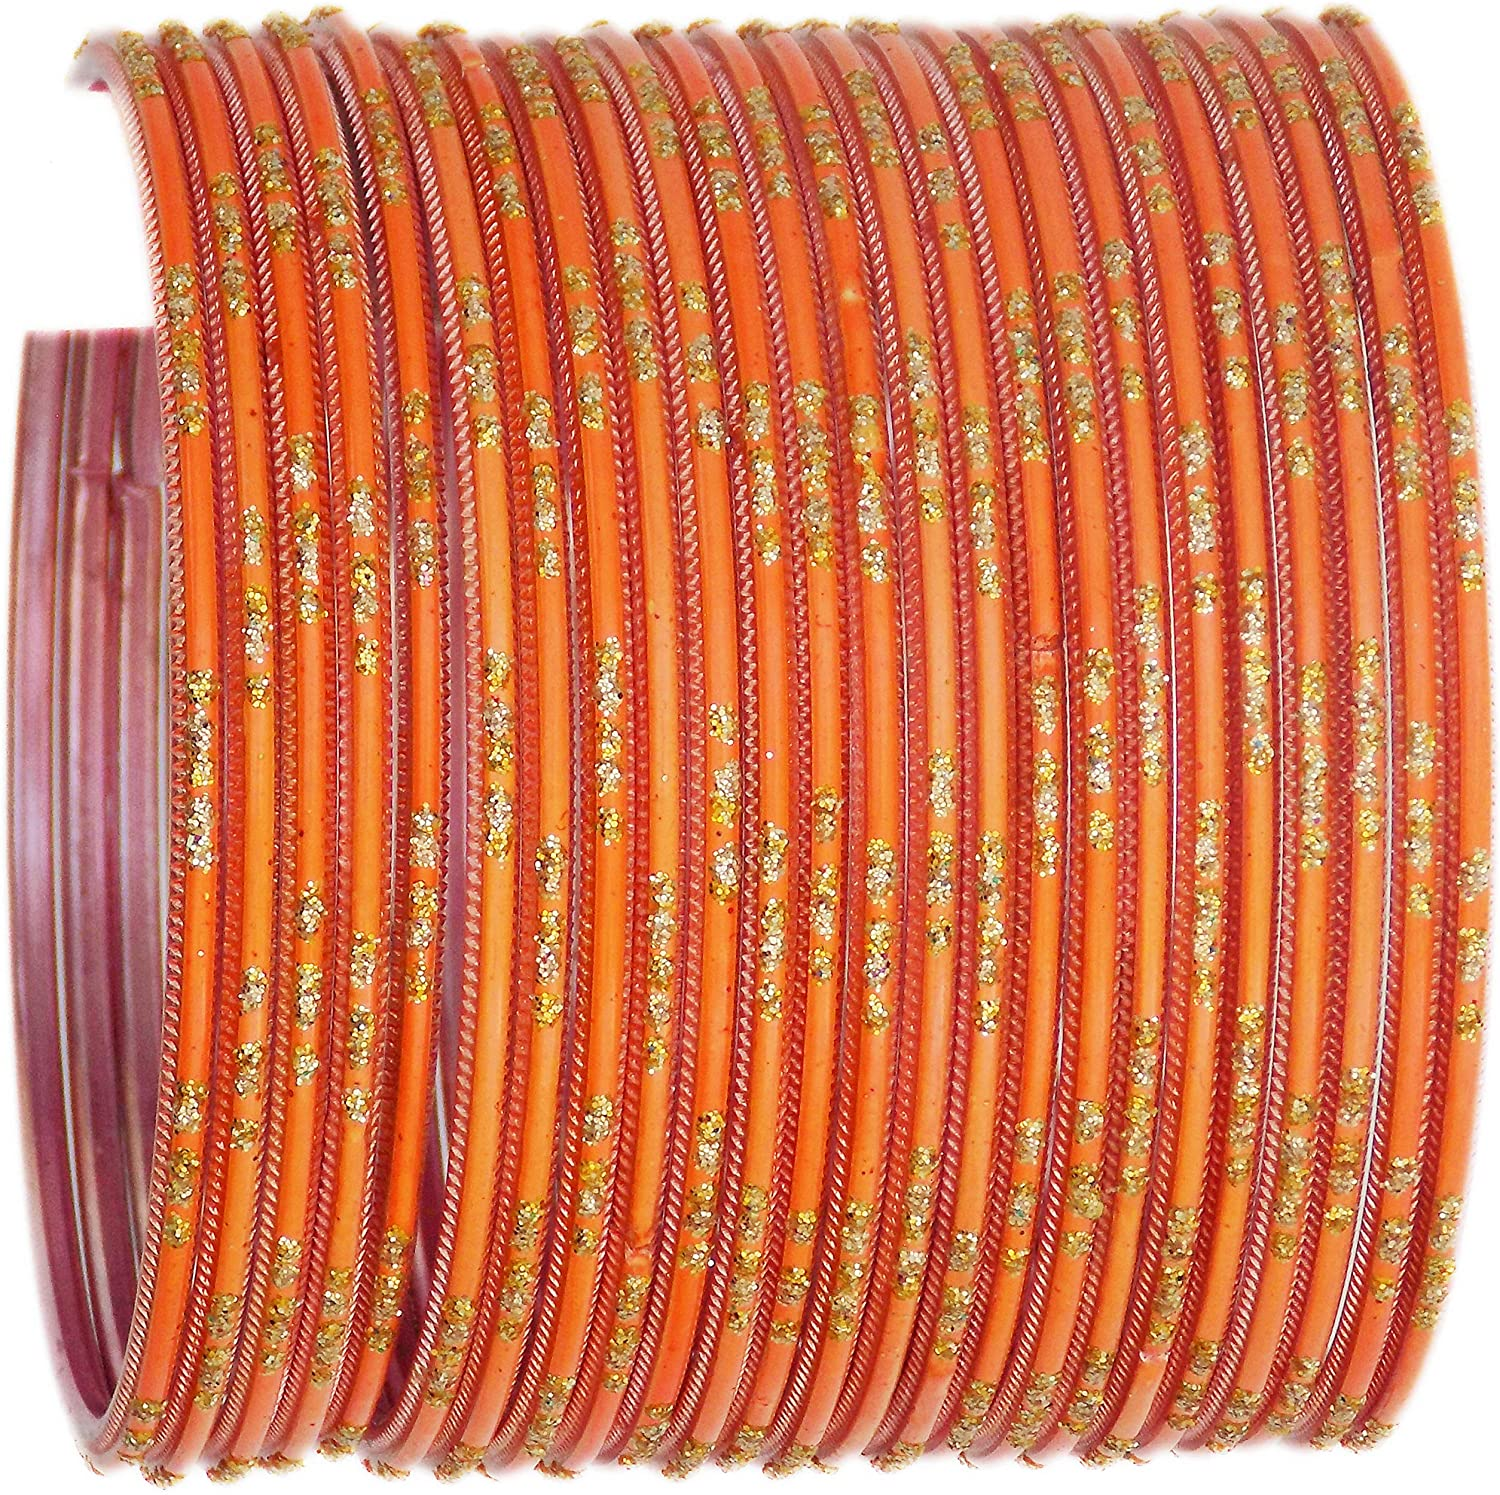 JD'Z COLLECTION Indian Costume Bollywood Jewelry Plain Metal Bangles Set Jewelry Multi Colors Bangles Set for Women